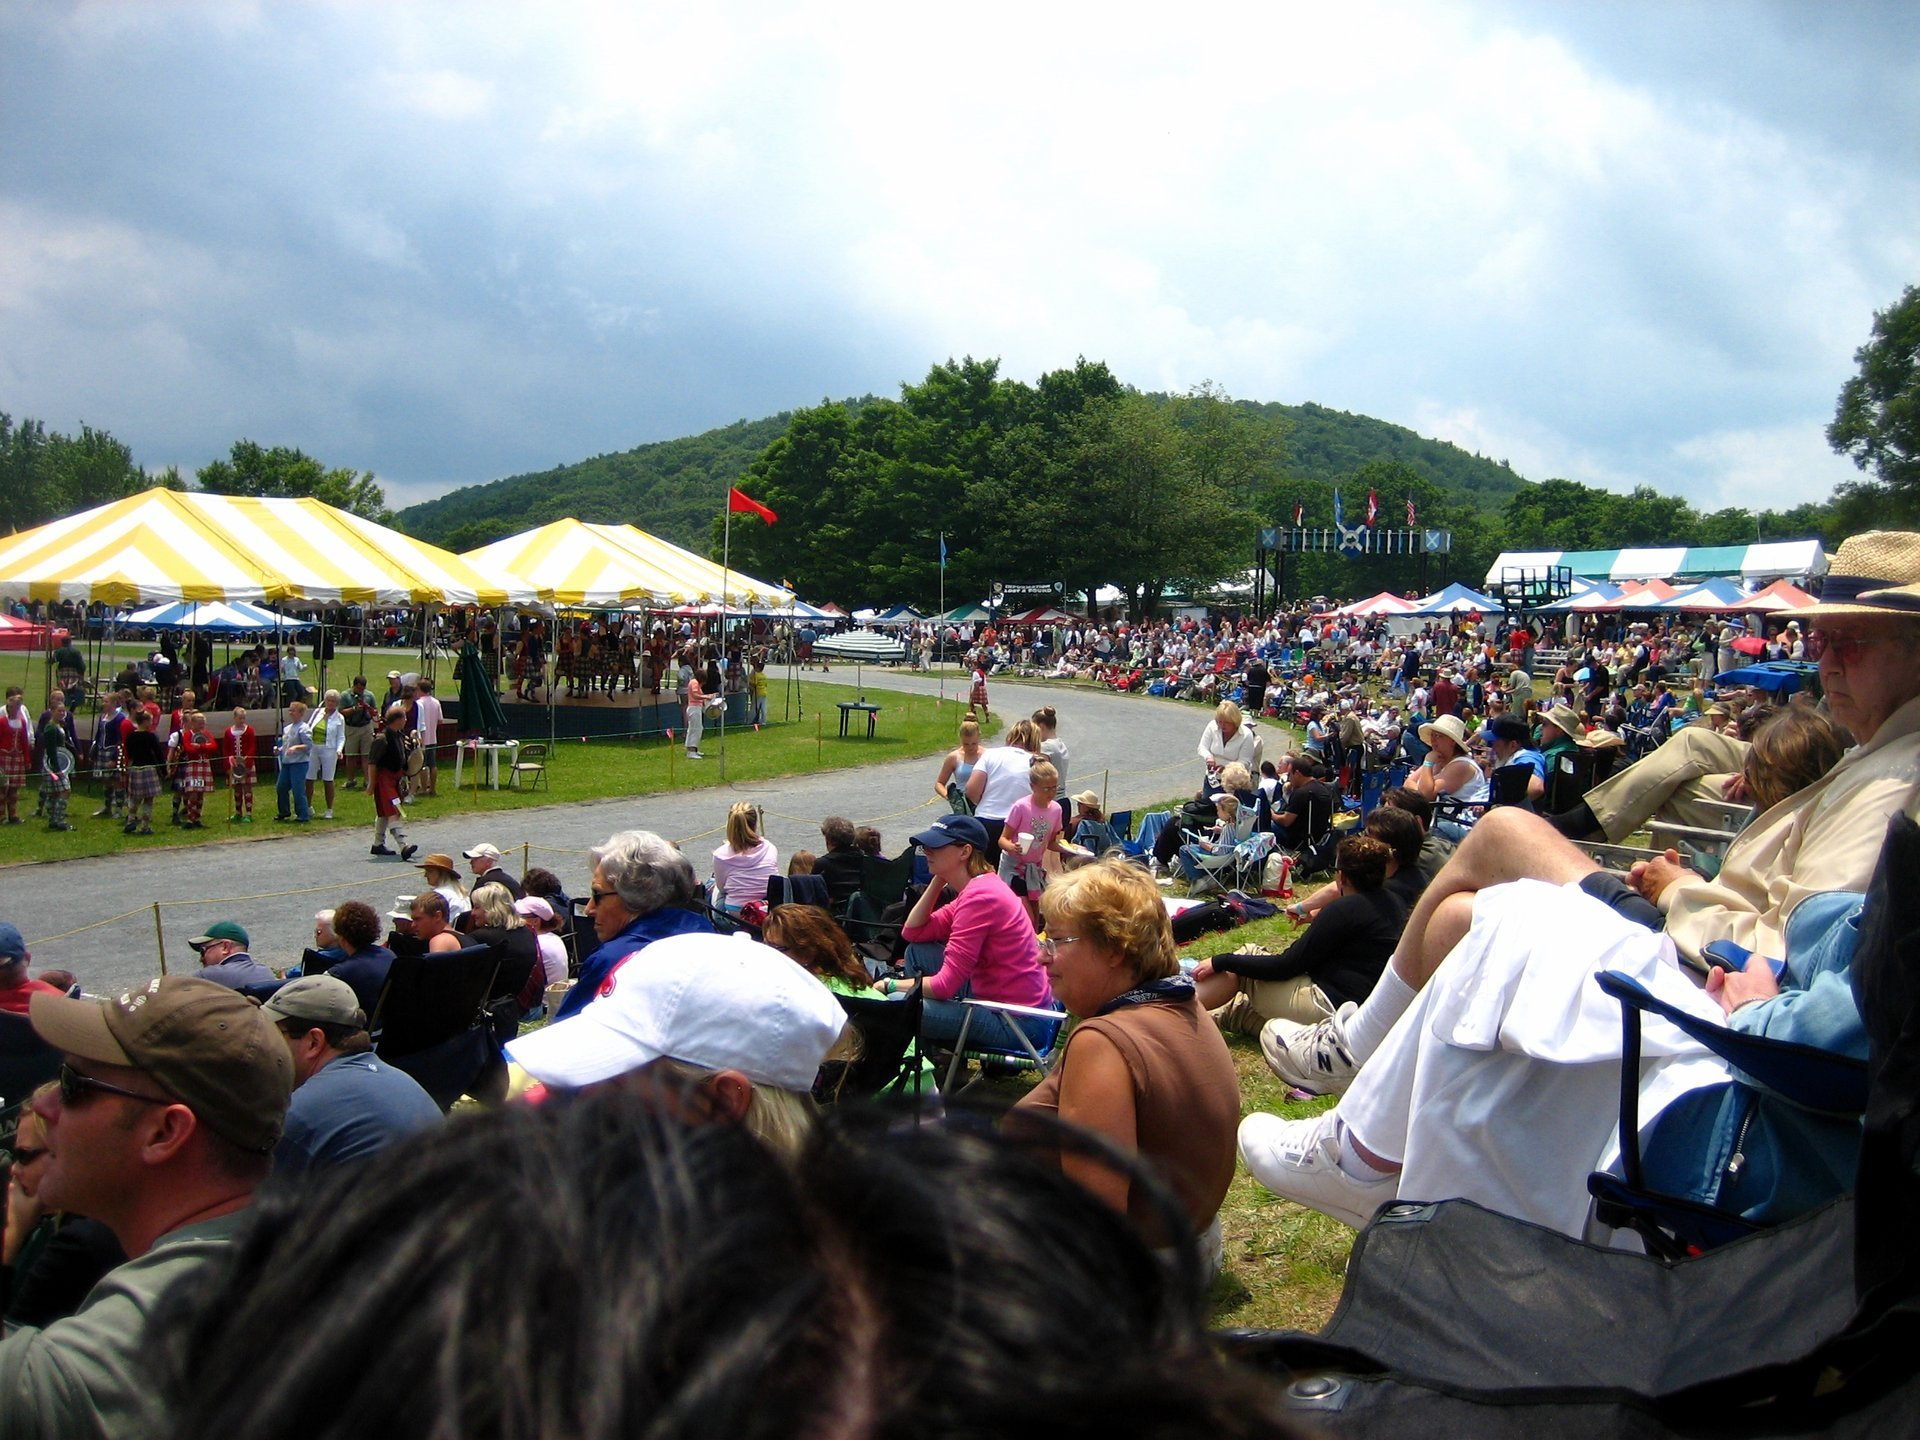 Best time to see Grandfather Mountain Highland Games 2020